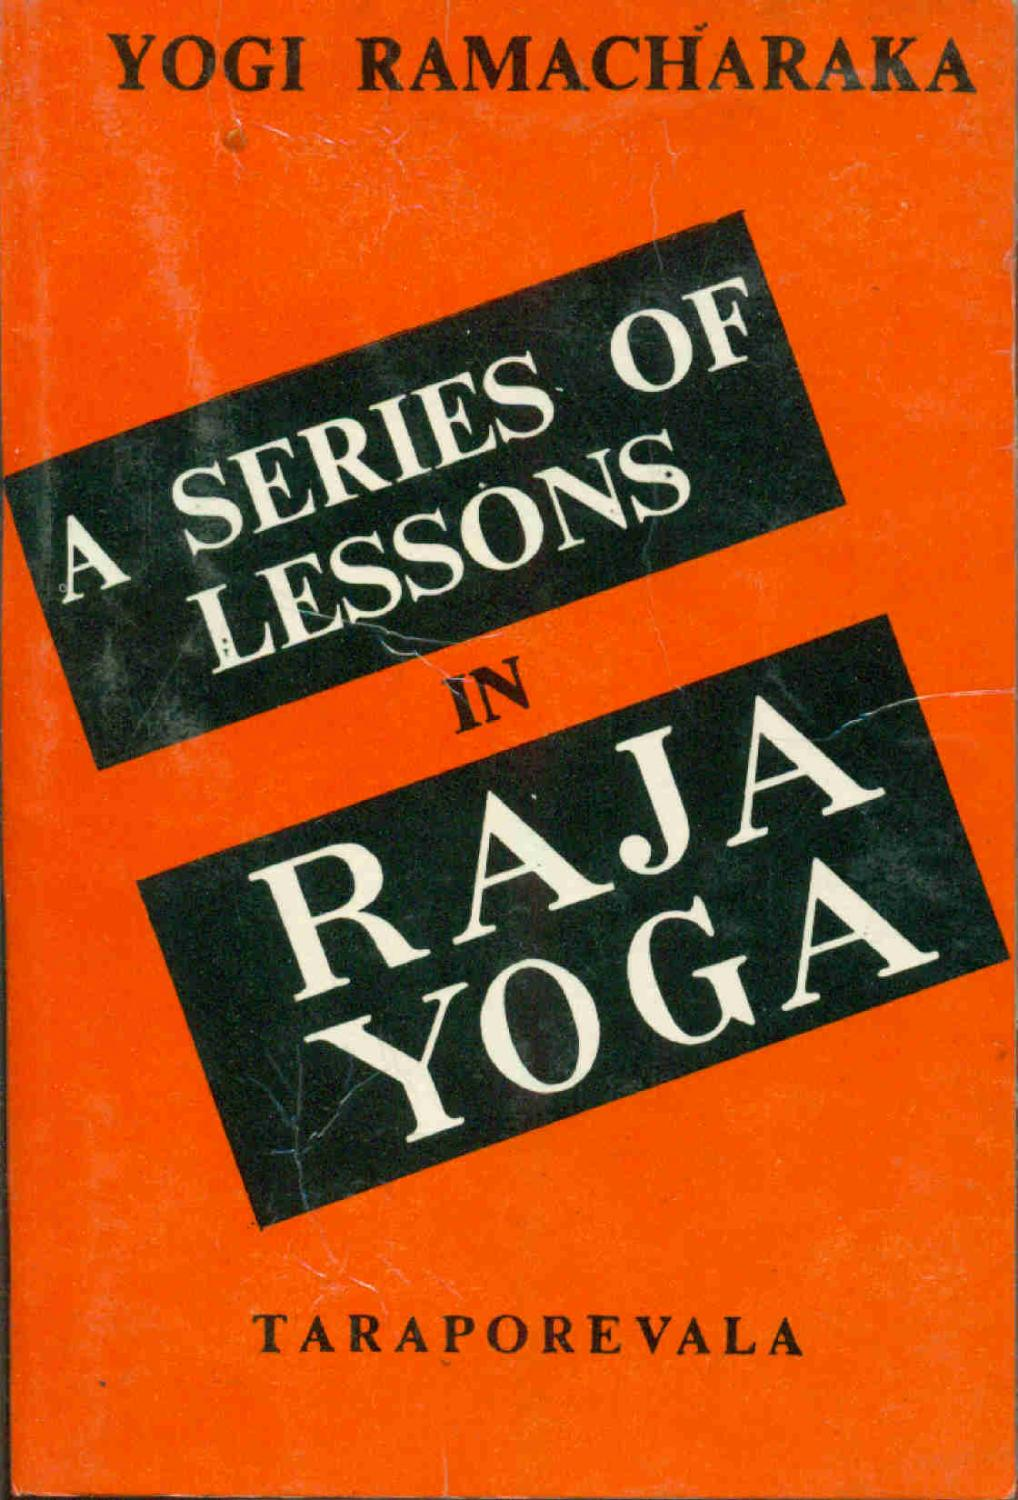 A Series of Lessons in Raja Yoga (Yoga of Wisdom series/Taraporevala) (image)